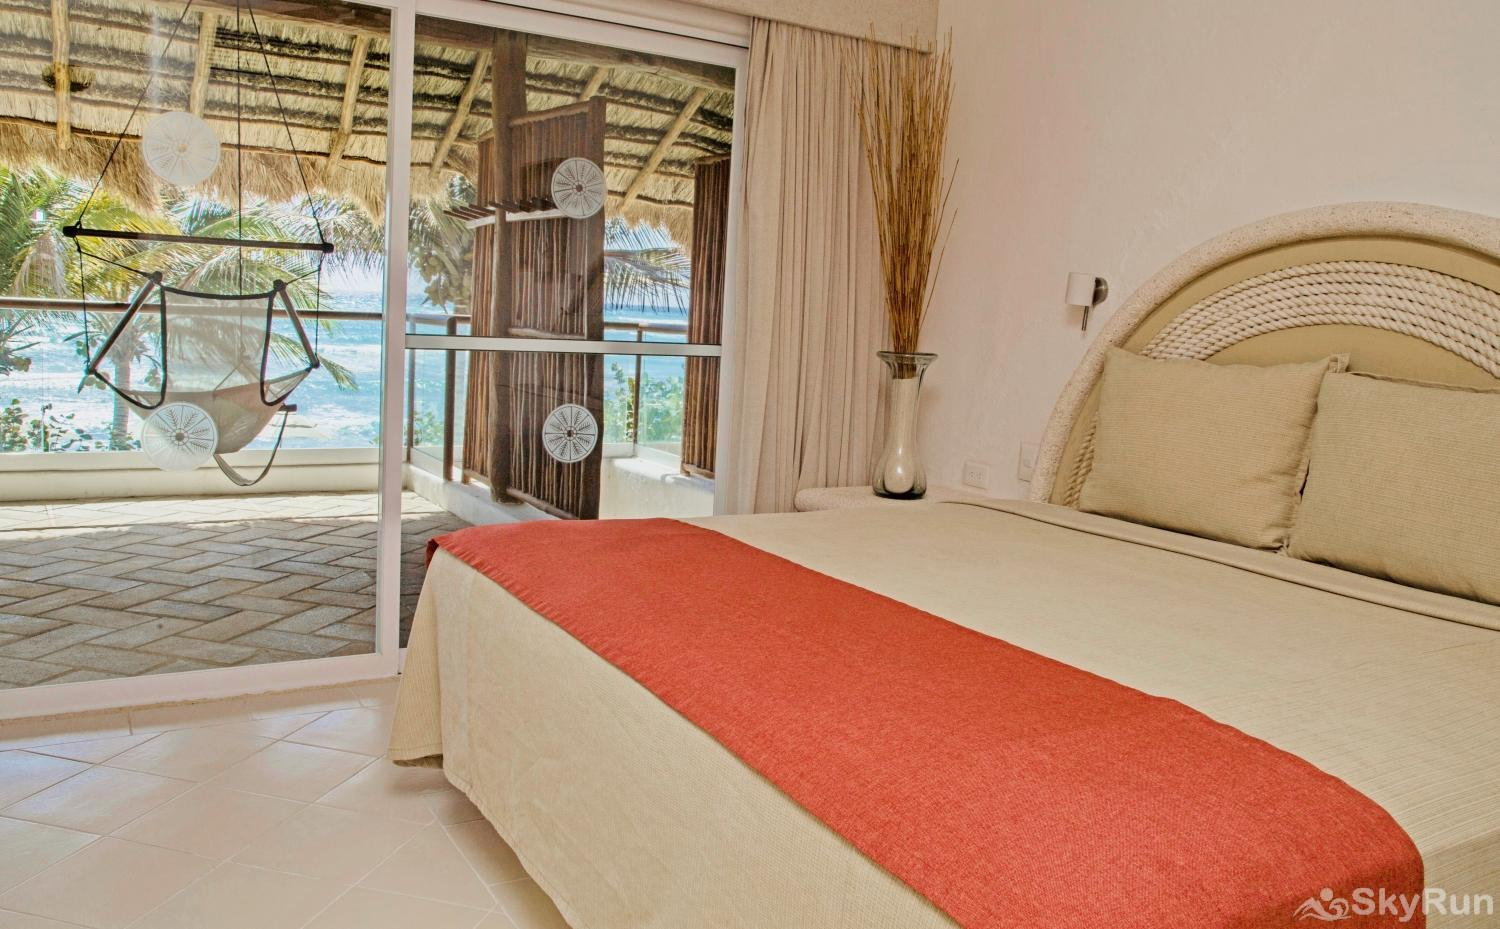 Beachfront Villa at Akumal Bay 210B 2bedroom 2nd floor